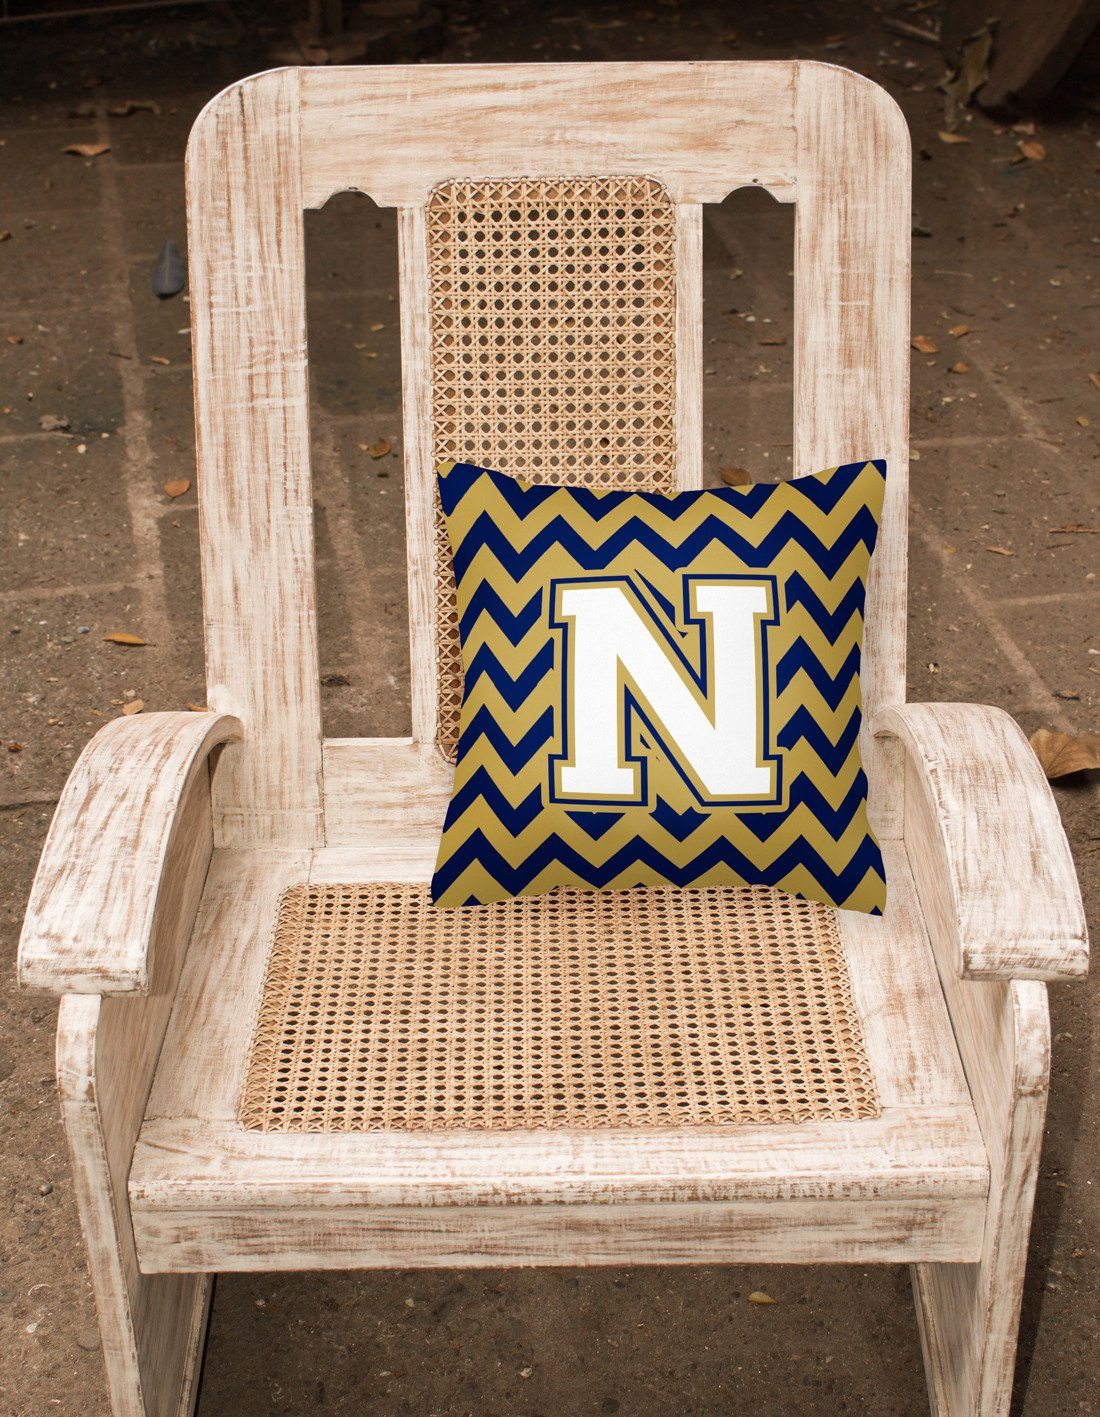 Letter N Chevron Navy Blue and Gold Fabric Decorative Pillow CJ1057-NPW1414 by Caroline's Treasures